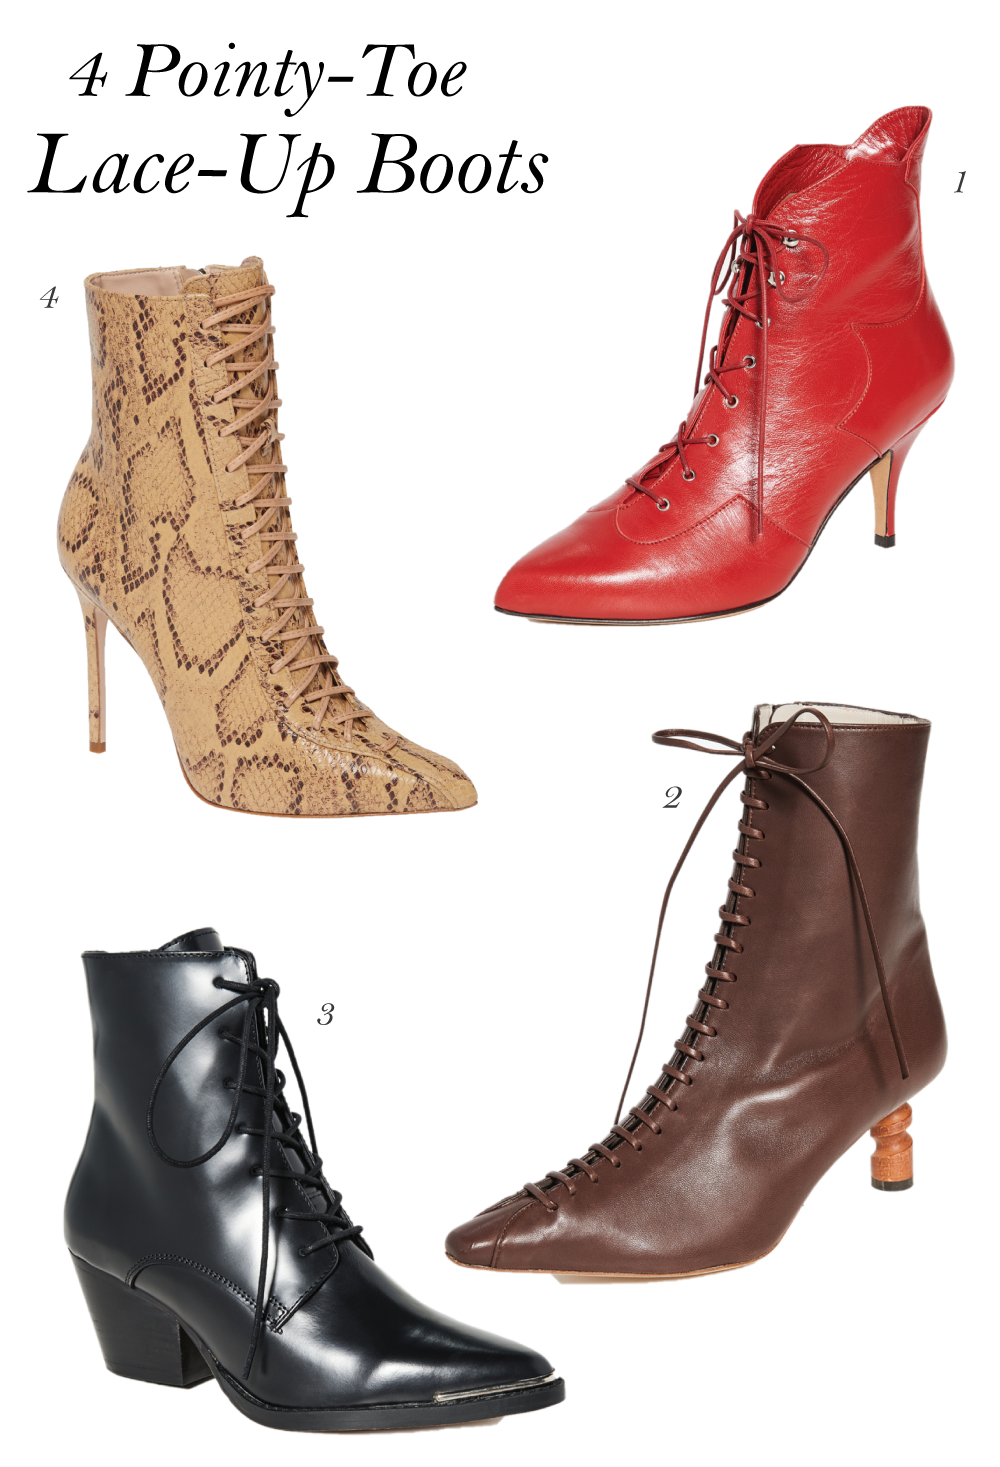 4 Pointy-Toe Lace-Up Boots